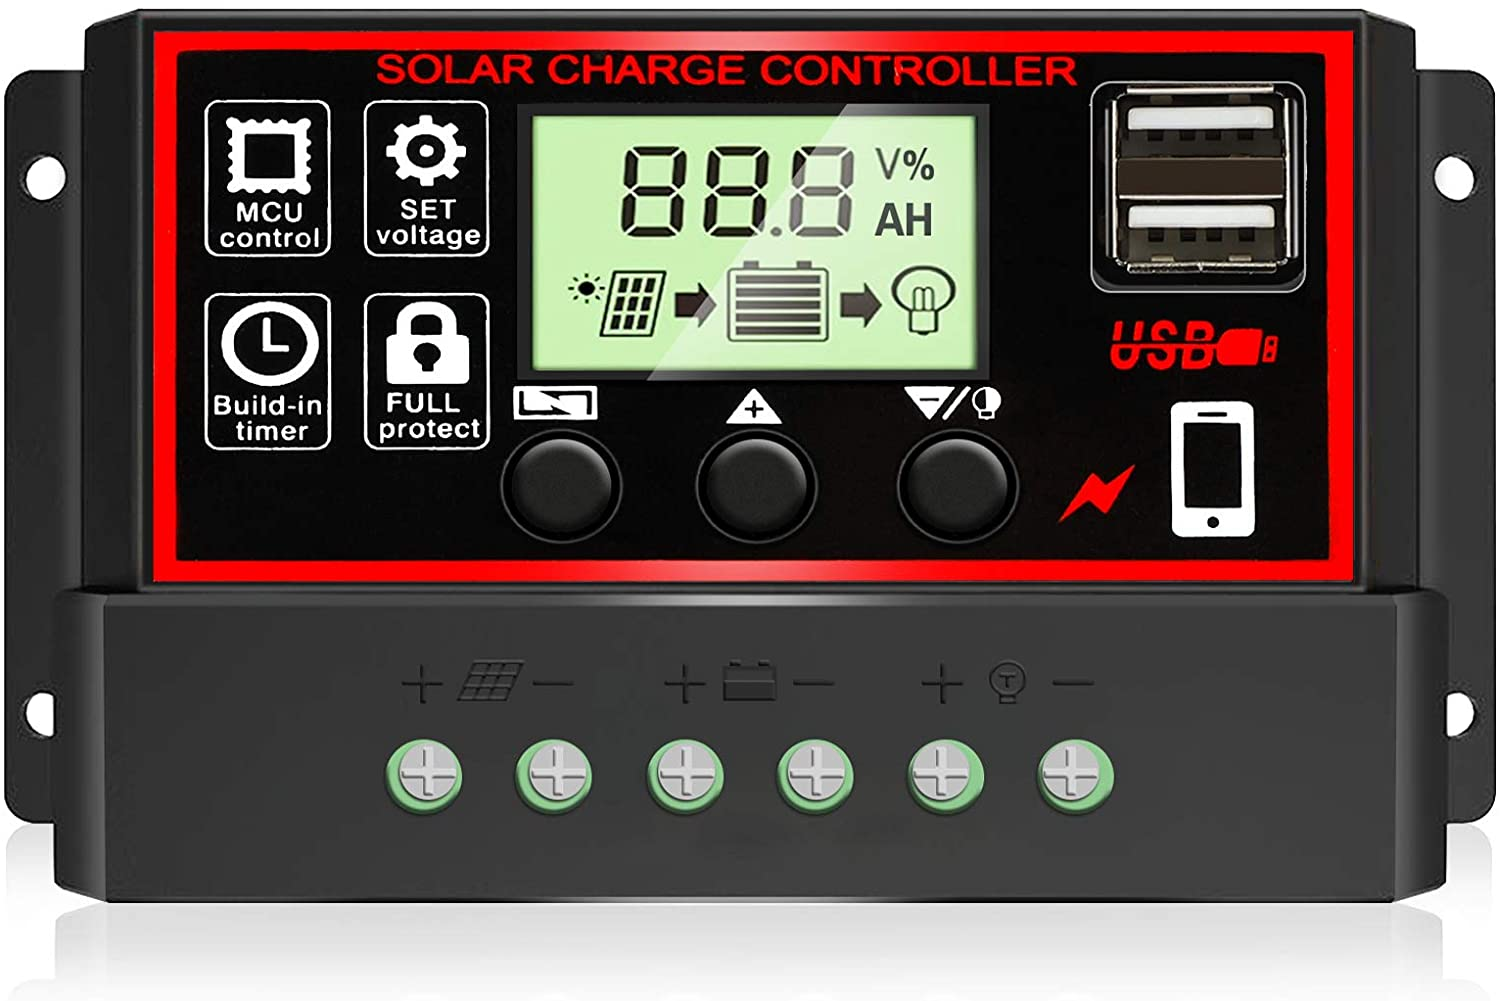 [2020 Upgraded] 30A Solar Charge Controller, Black Solar Panel Battery Intelligent Regulator with Dual USB Port 12V/24V PWM Auto Paremeter Adjustable LCD Display